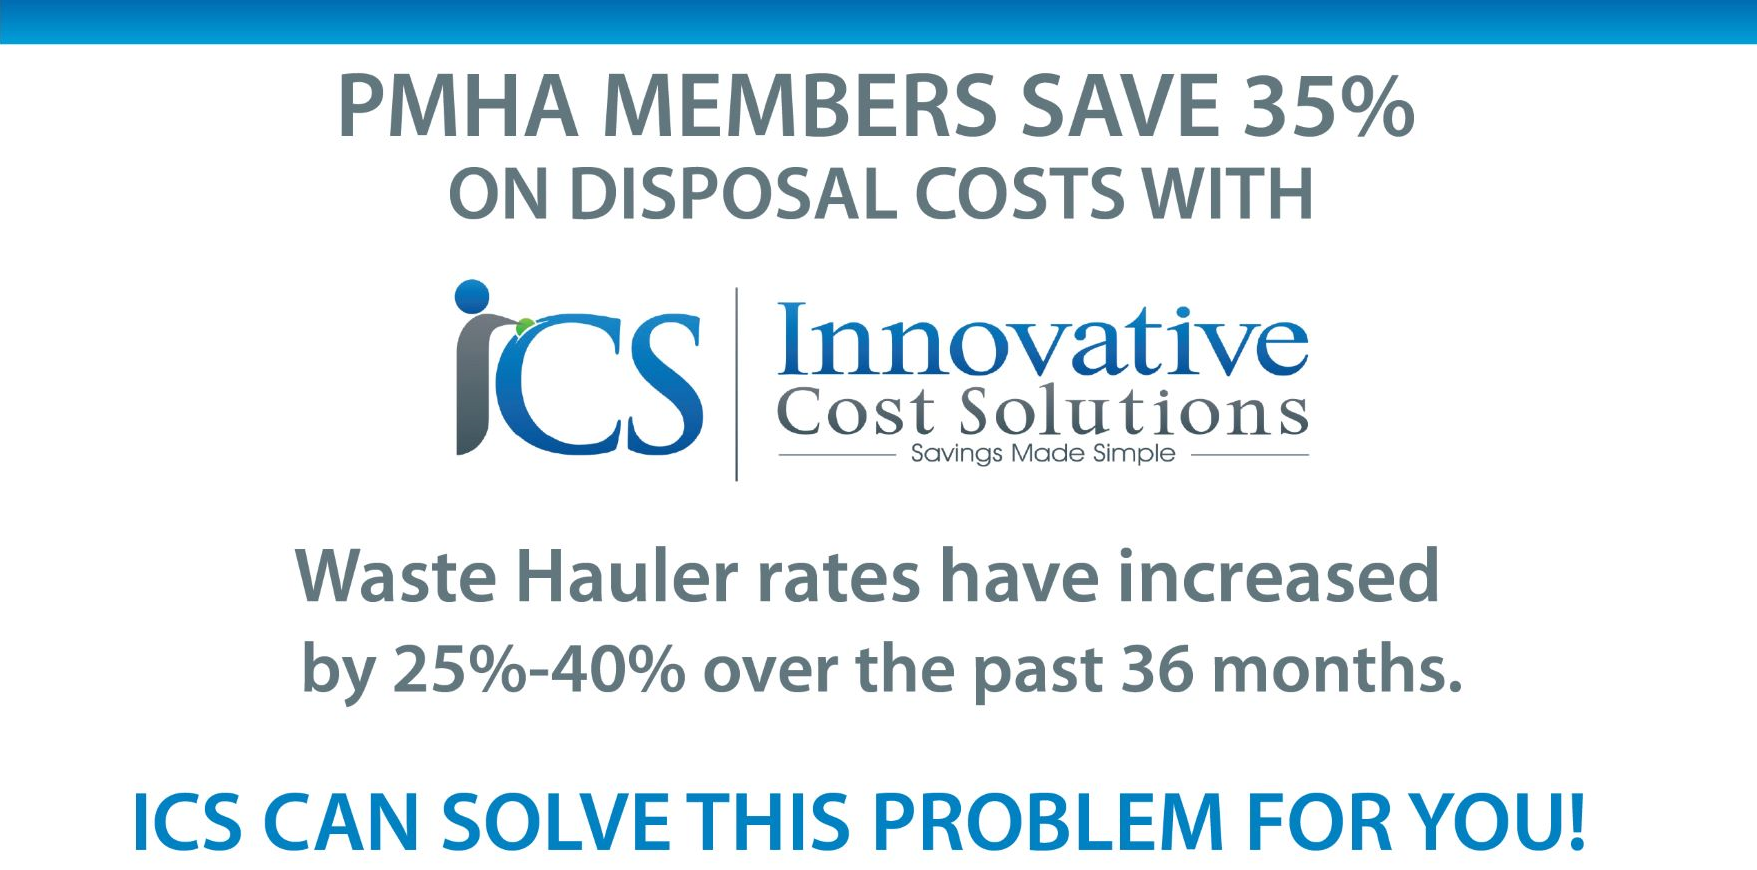 PMHA Members Save 25% on Disposal Costs with ICS